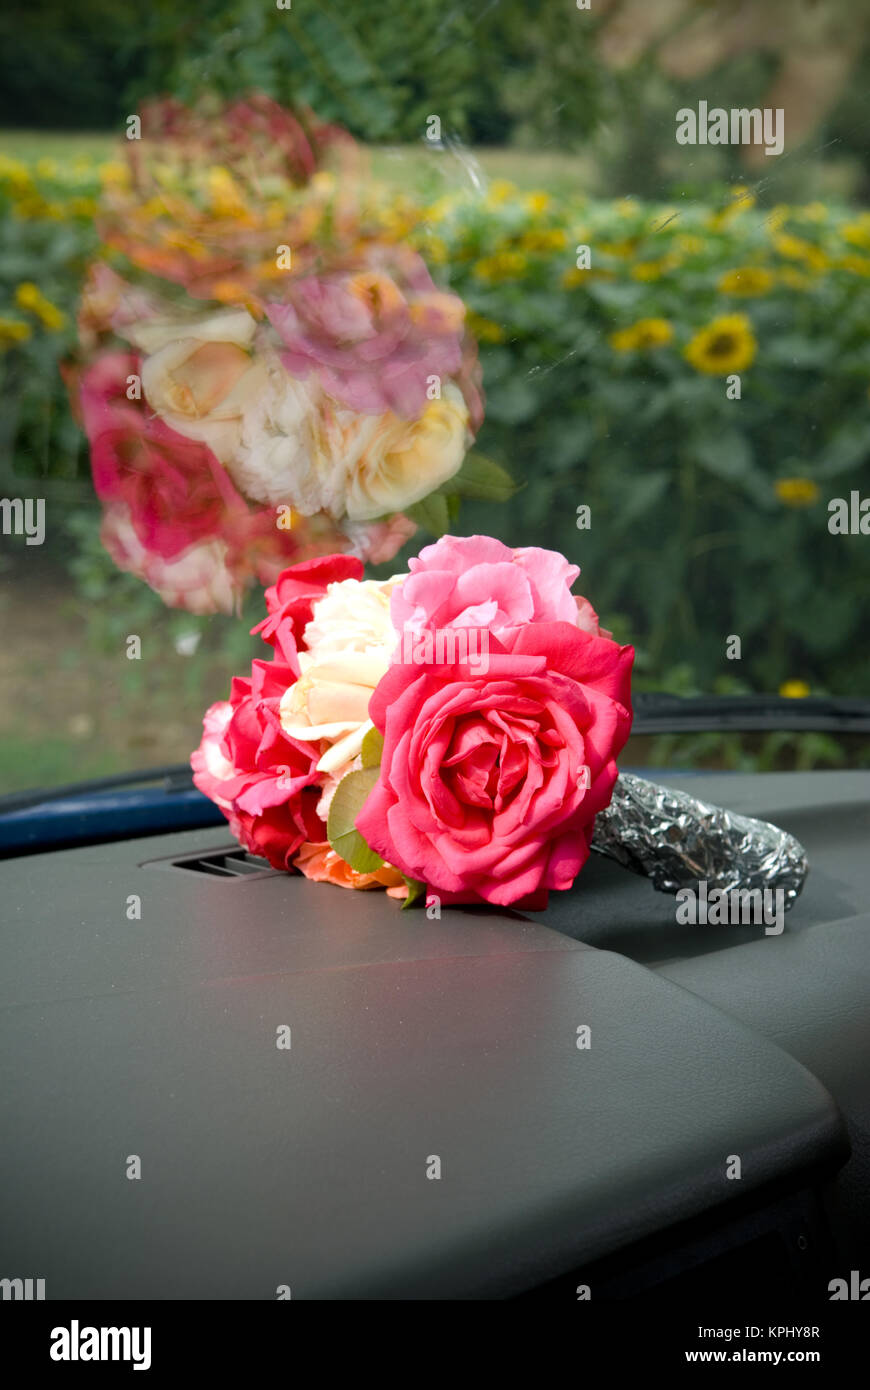 photo of a small bouquet of roses wrapped in tinfoil on the dashboard of a car with a sunflower field in background - Stock Image